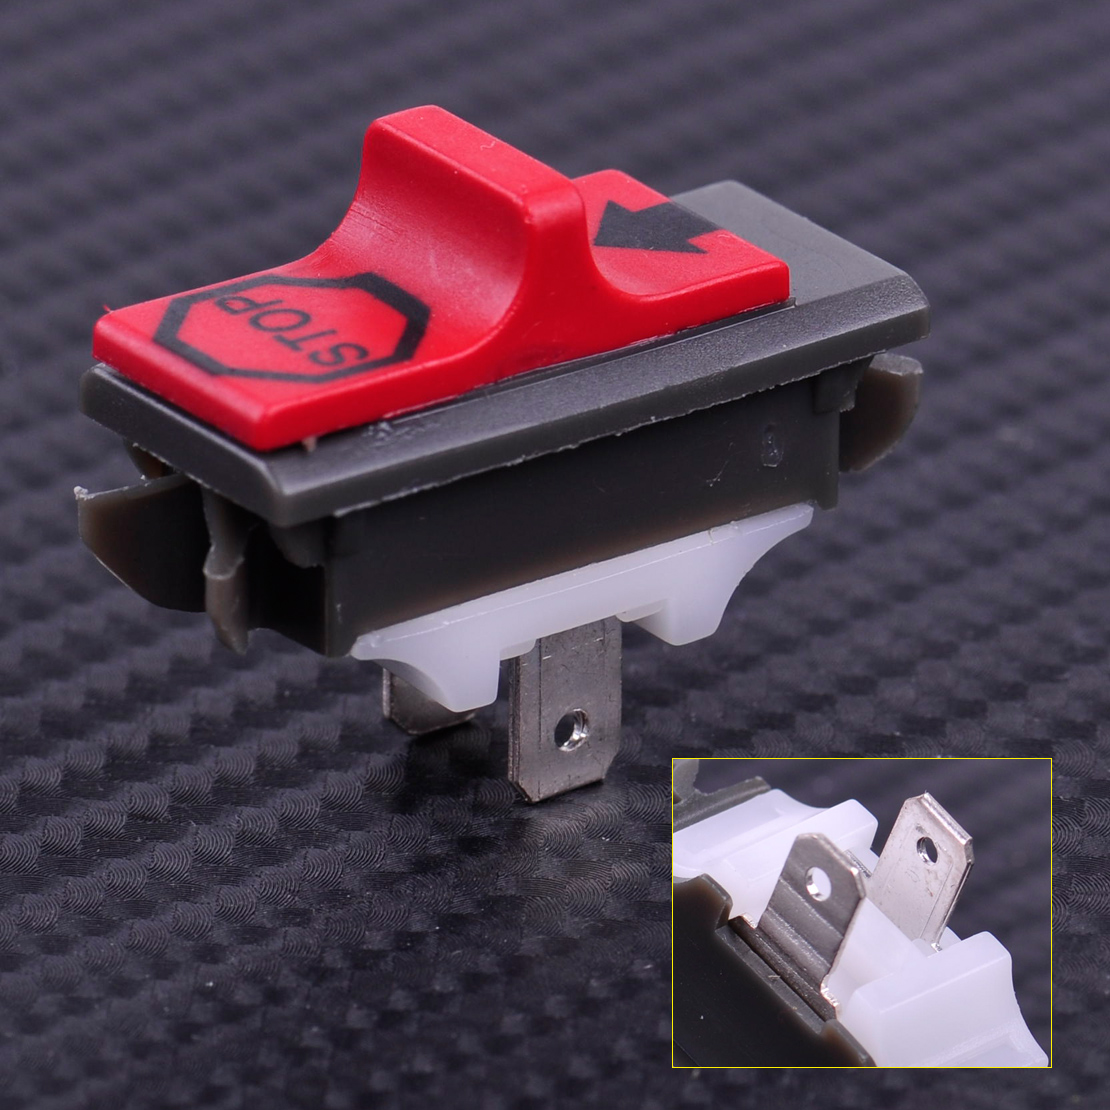 LETAOSK New Kill Stop Switch On-off Fit For Husqvarna 365 371 372 372XP 336 Chainsaw